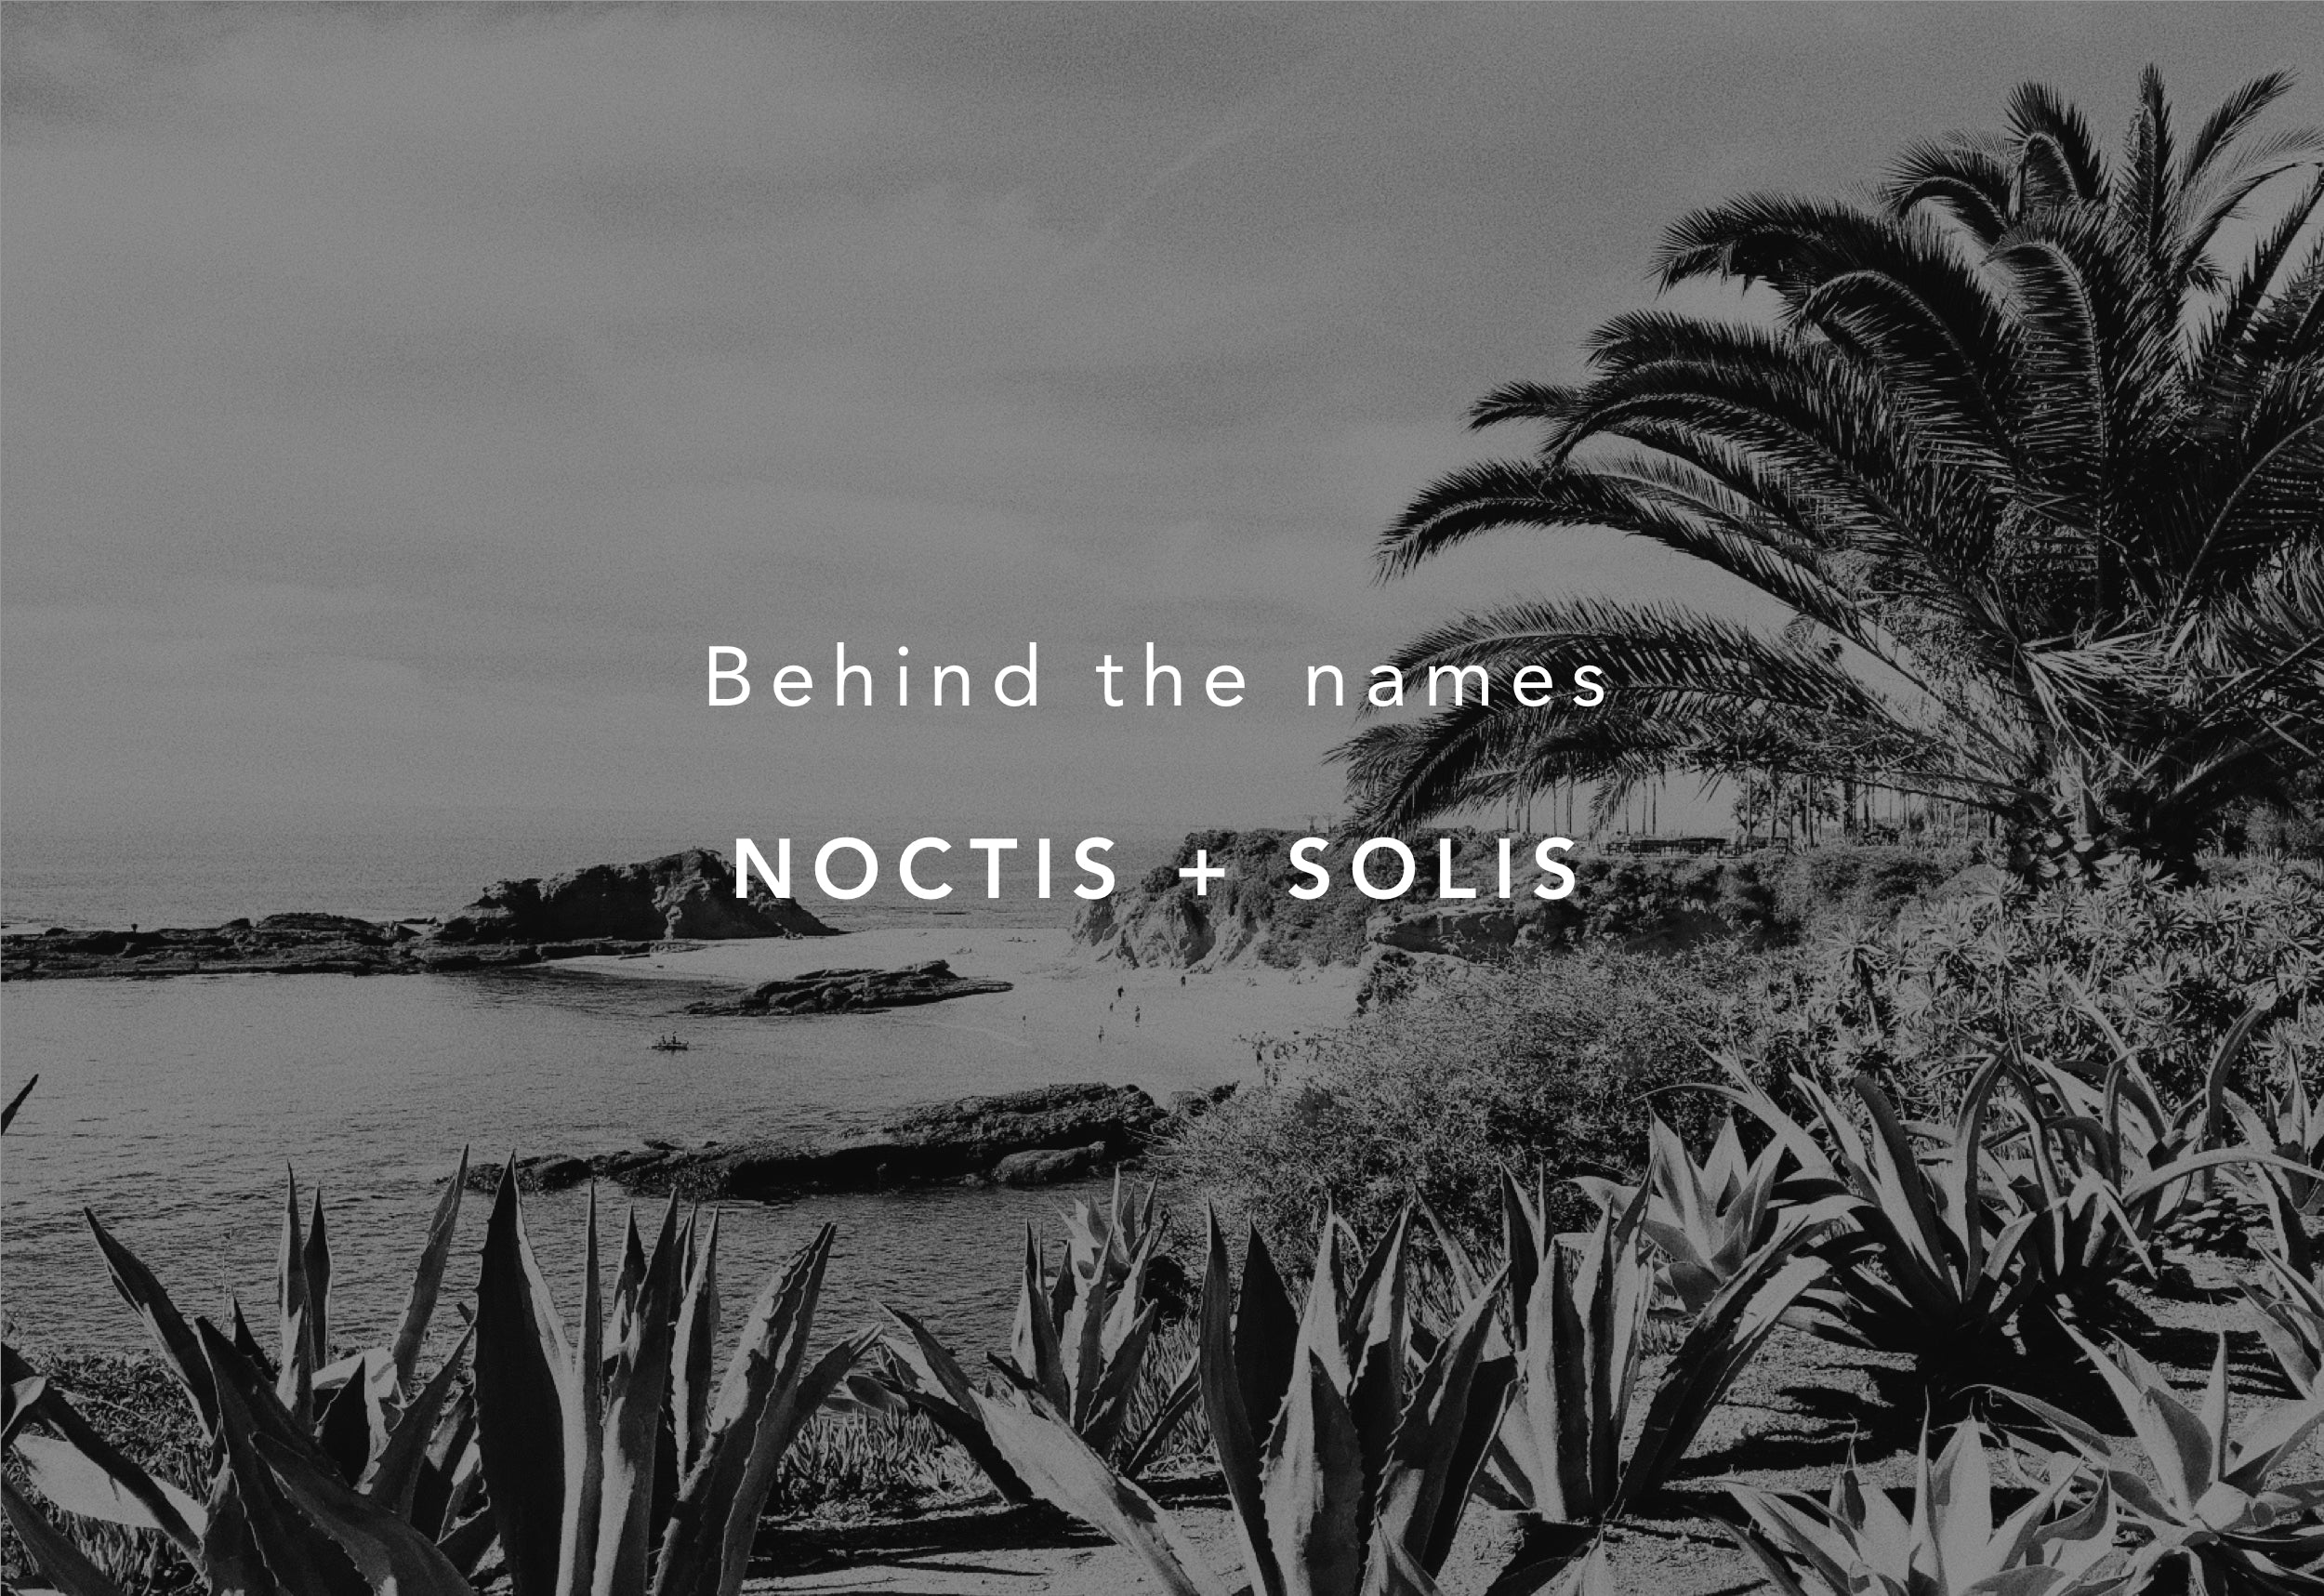 Behind the names Noctis and Solis